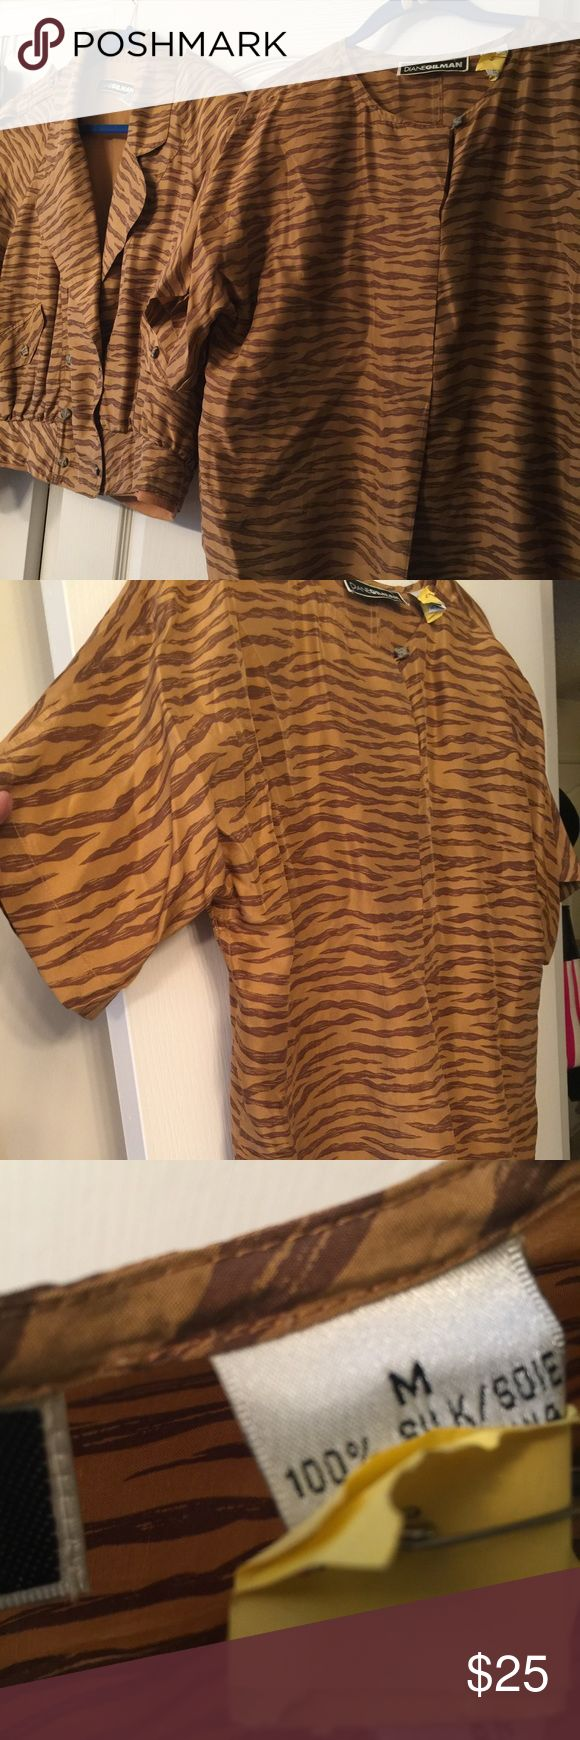 Gilman100%silk animal print short sleeve top 12/14 Part of a gorgeous silk set purchased at Nordstroms separately.. jacket 14/16 matches in photo and a listed size 16 real leather mini skirt  just drycleaned price for short sleeve only Gilman Tops Blouses